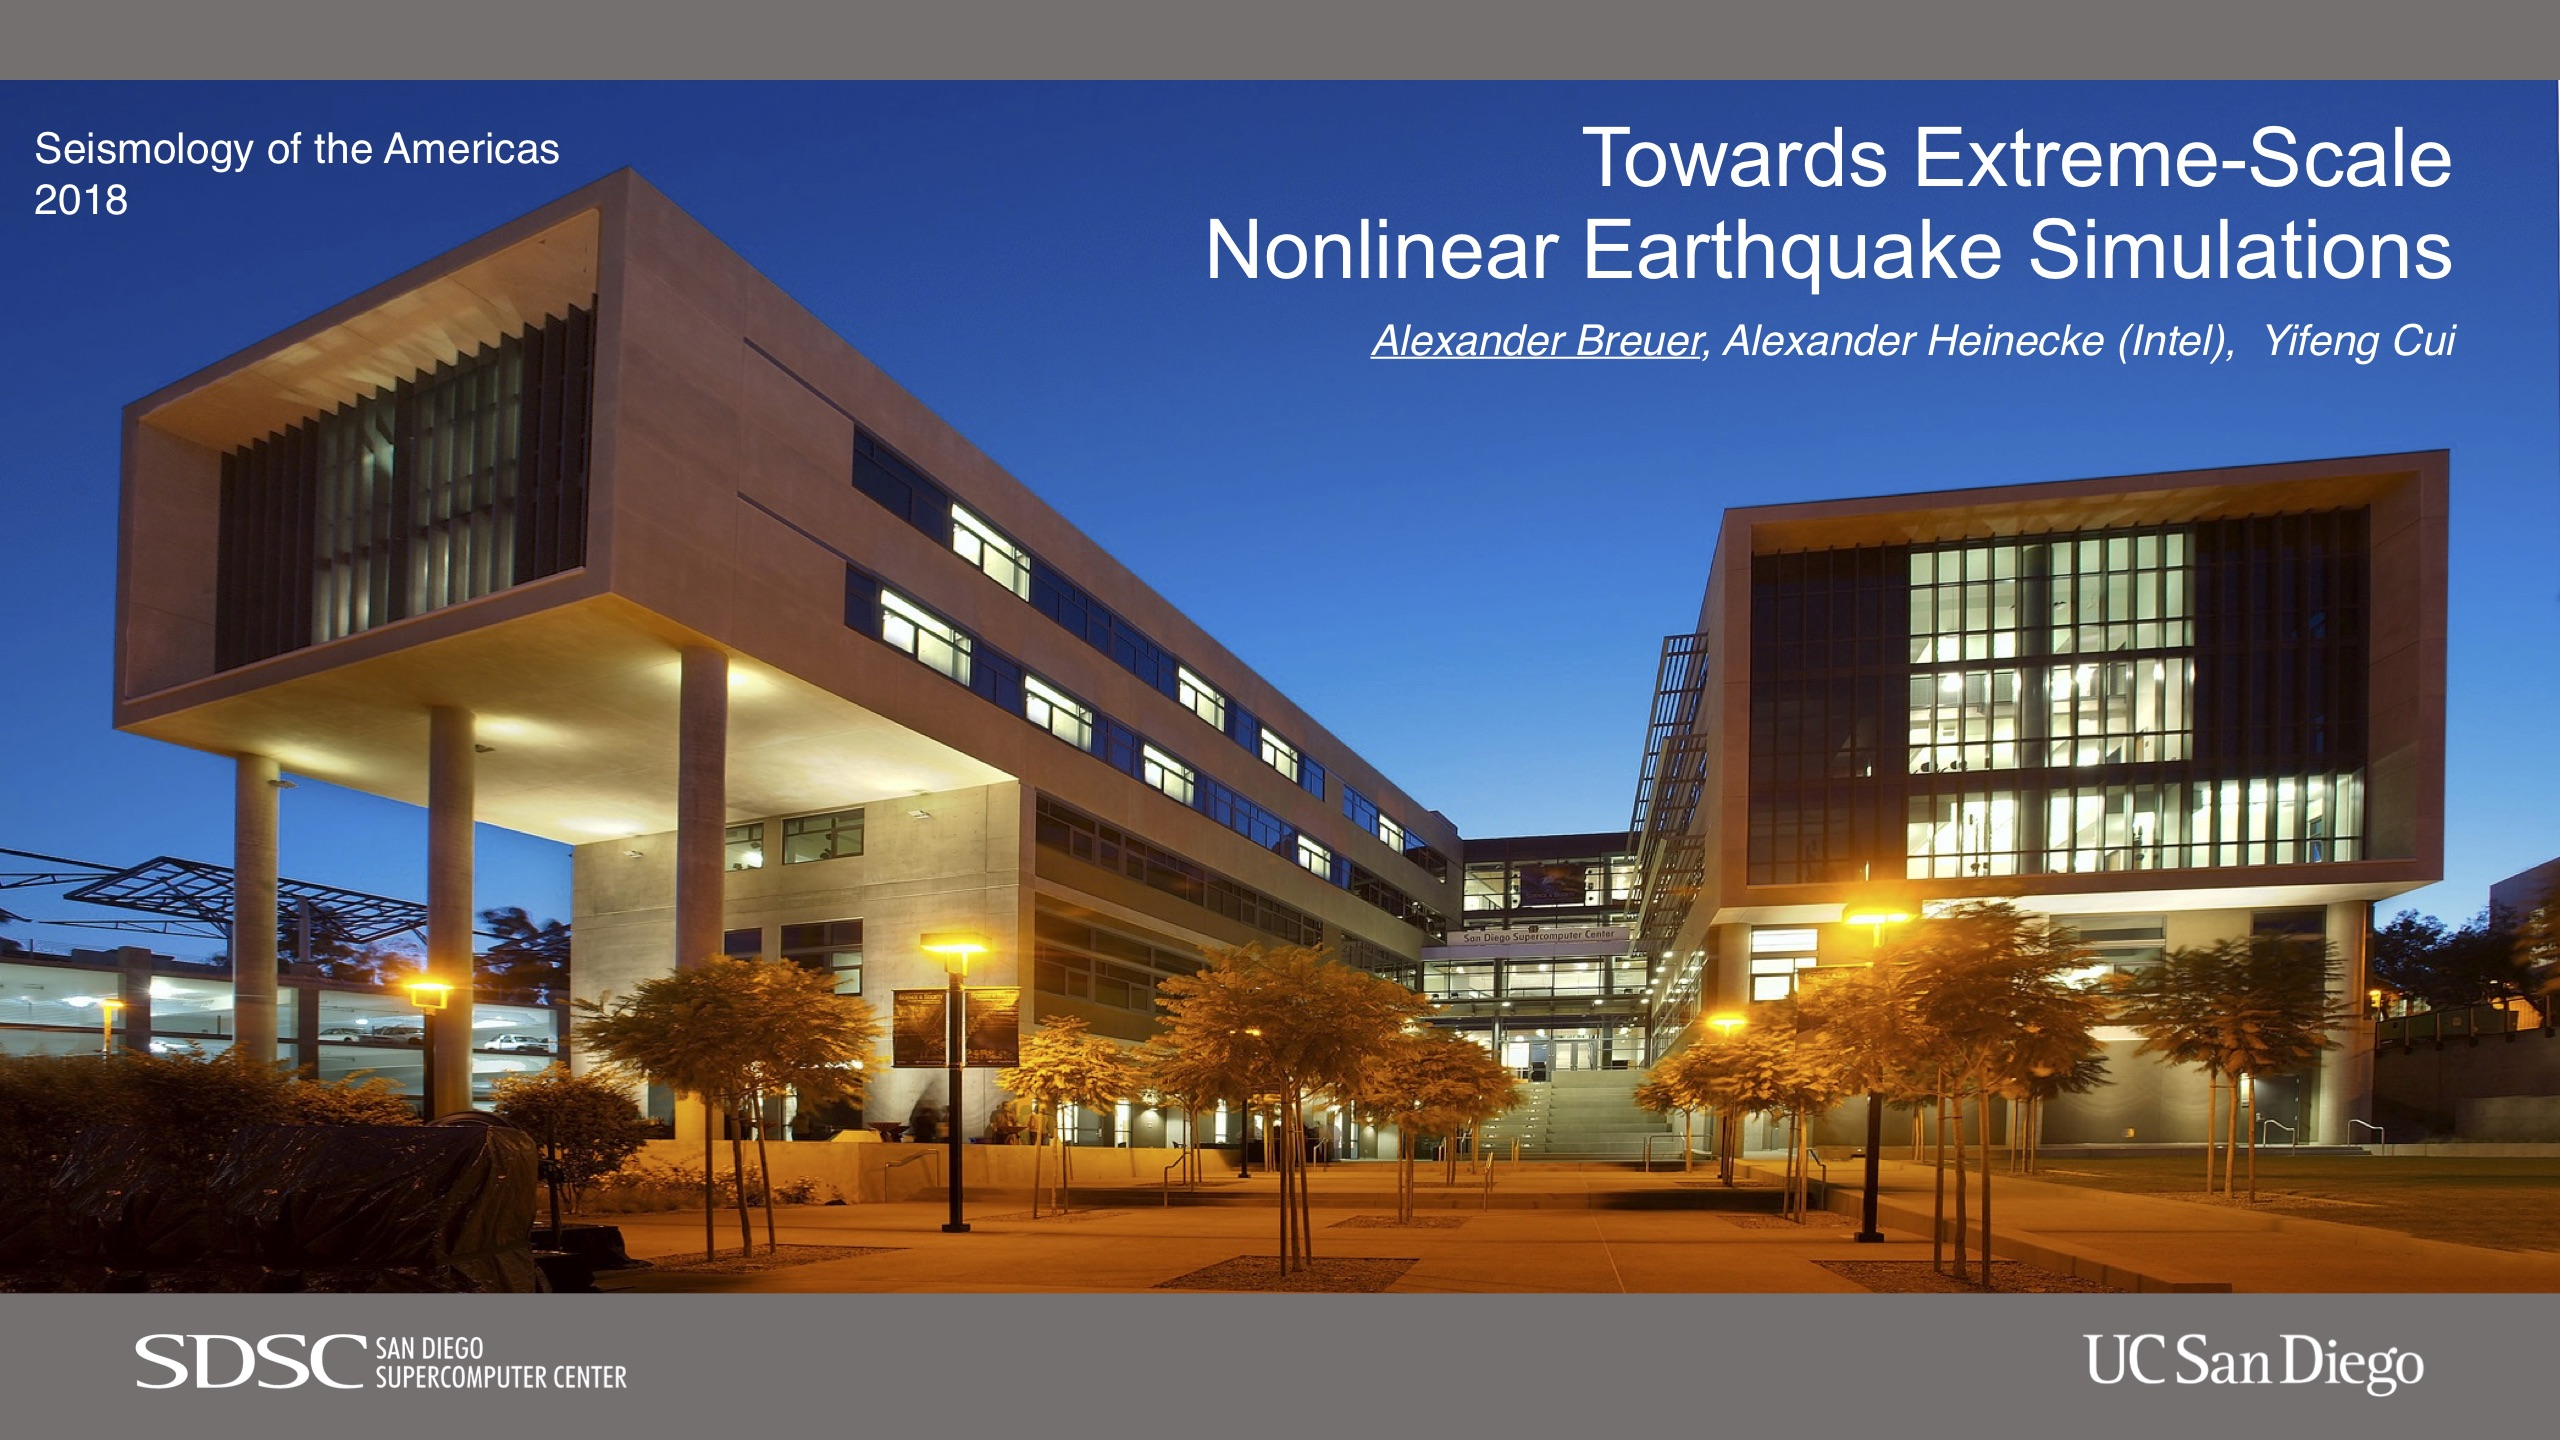 Slides of presentation Towards Extreme-Scale Nonlinear Earthquake Simulations